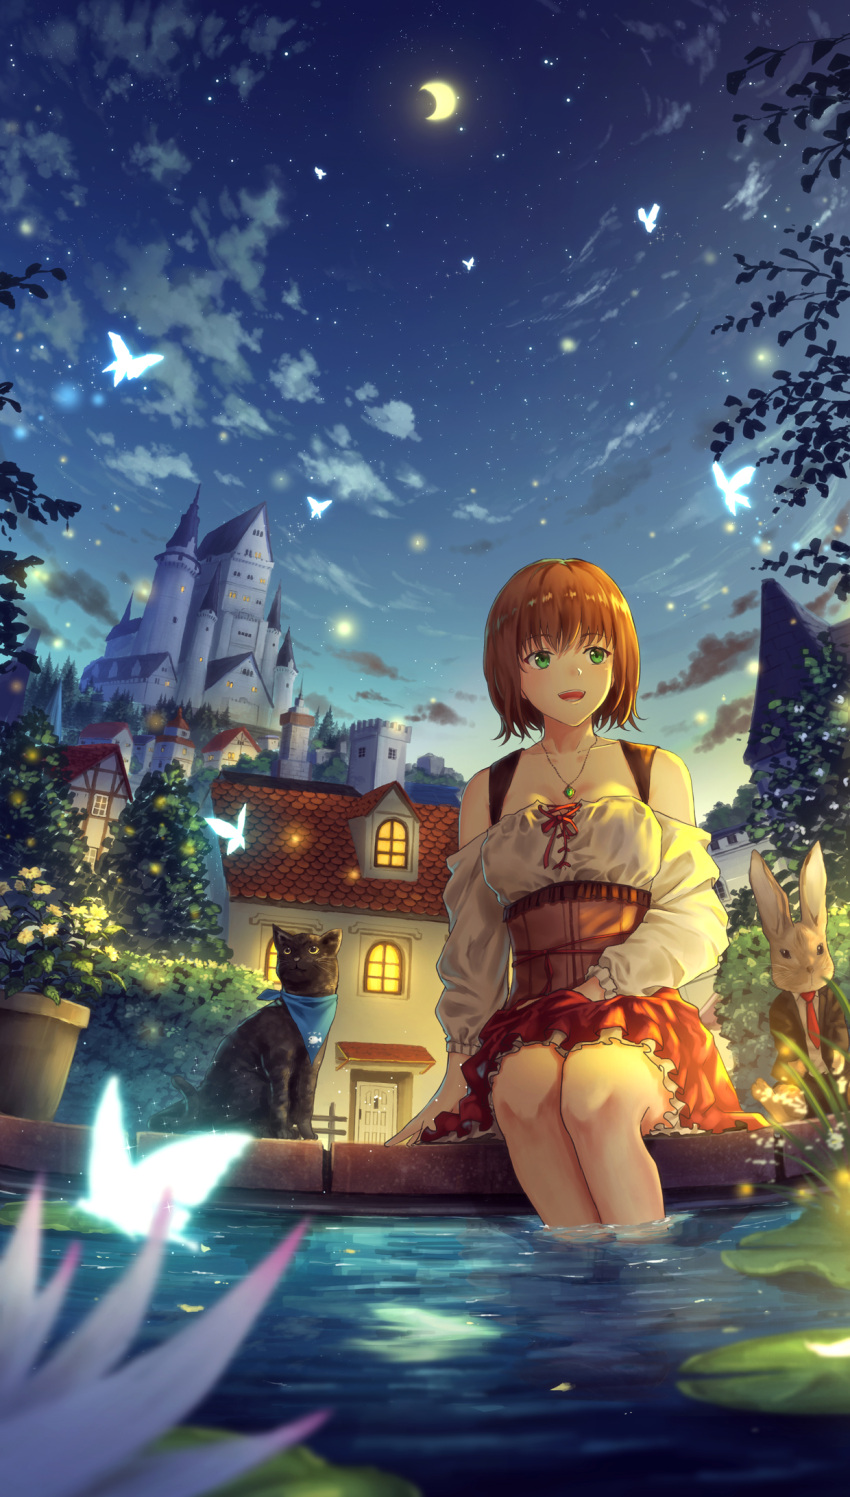 1girl bare_shoulders black_cat butterfly castle cat clouds commentary corset crescent_moon eyebrows_visible_through_hair fantasy fireflies flower formal green_eyes hand_in_lap hedge_(plant) highres house jacket jewelry lily_pad long_sleeves looking_to_the_side lotus moon neckerchief necklace necktie night night_sky open_clothes open_jacket open_mouth original outdoors pendant plant pond potted_plant rabbit red_neckwear redhead short_hair sitting sky soaking_feet solo star_(sky) starry_sky sugi87 suit traditional_clothes underskirt water